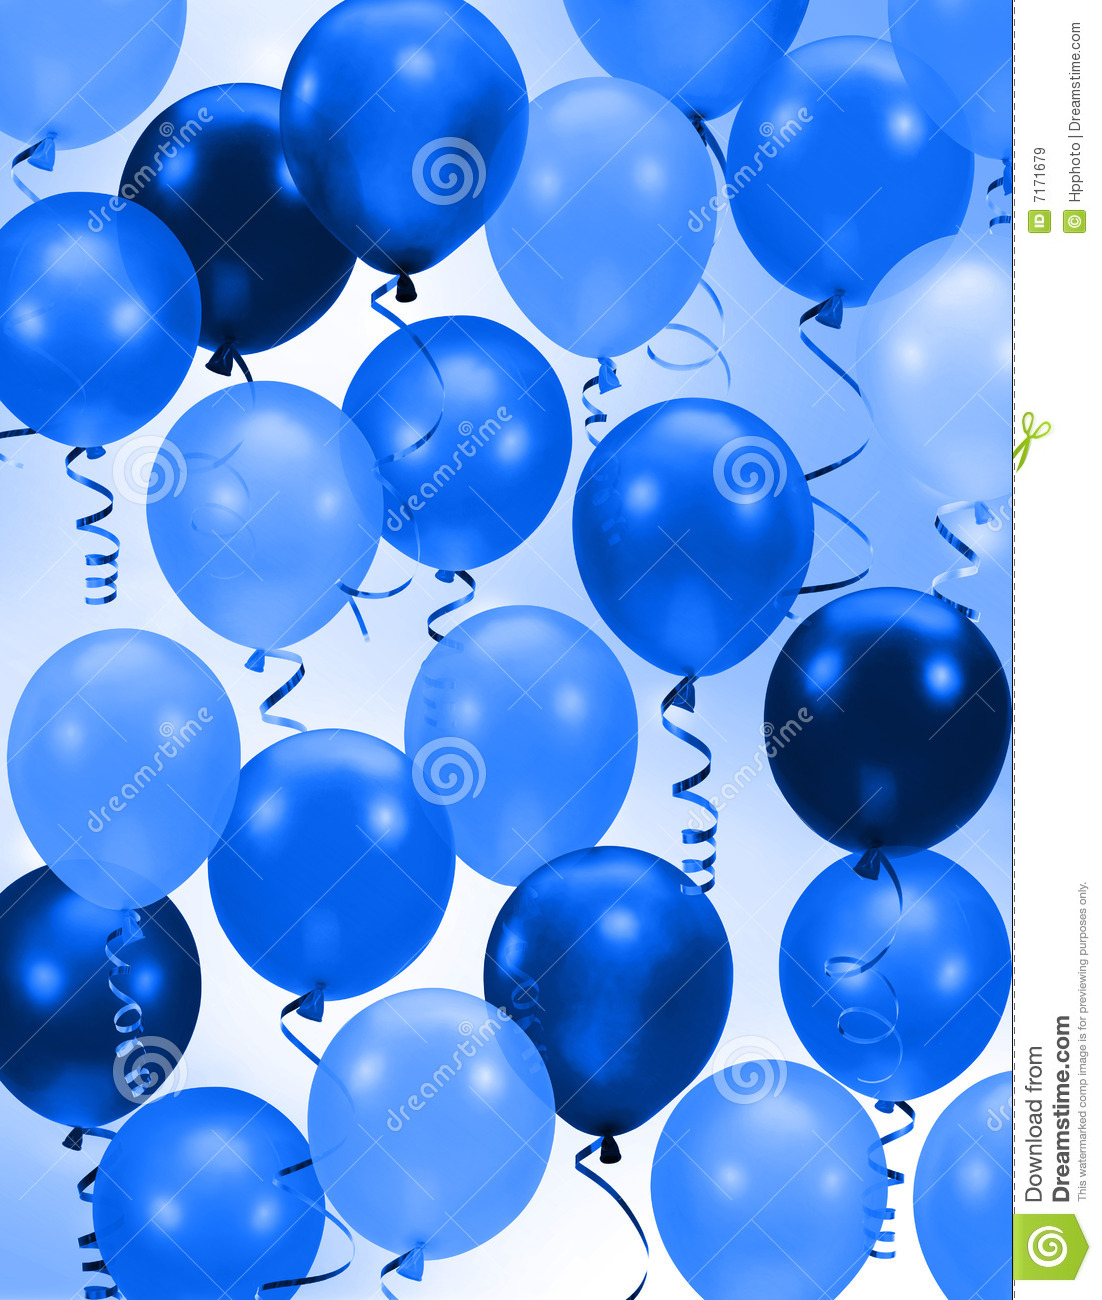 Celebration or birthday Party blue balloons background Birthday Celebration Background Hd